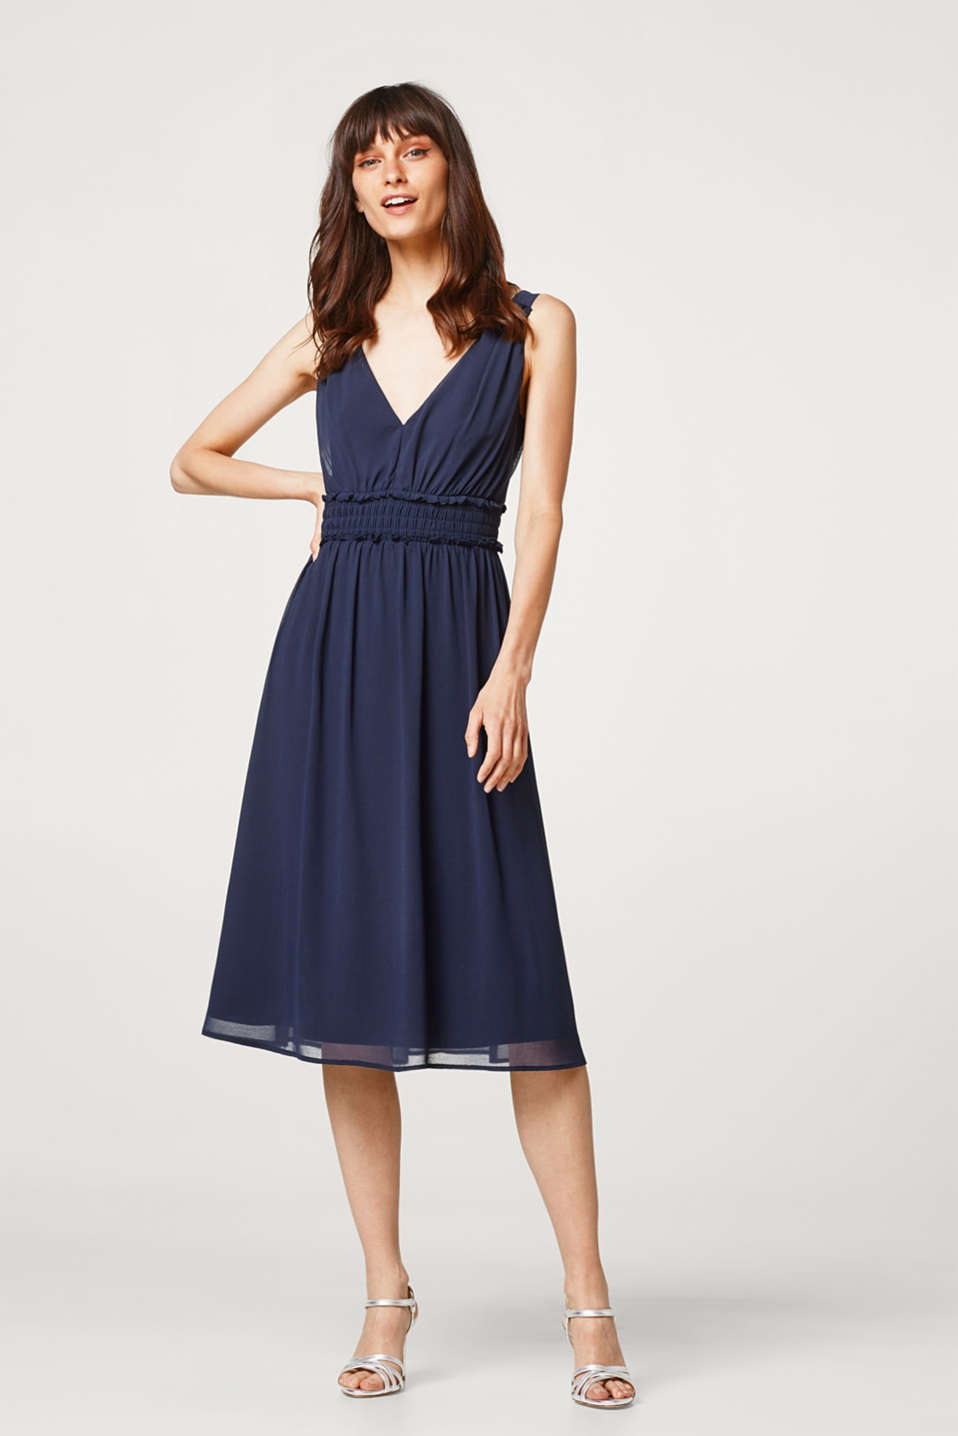 Chiffon dress with V-neck